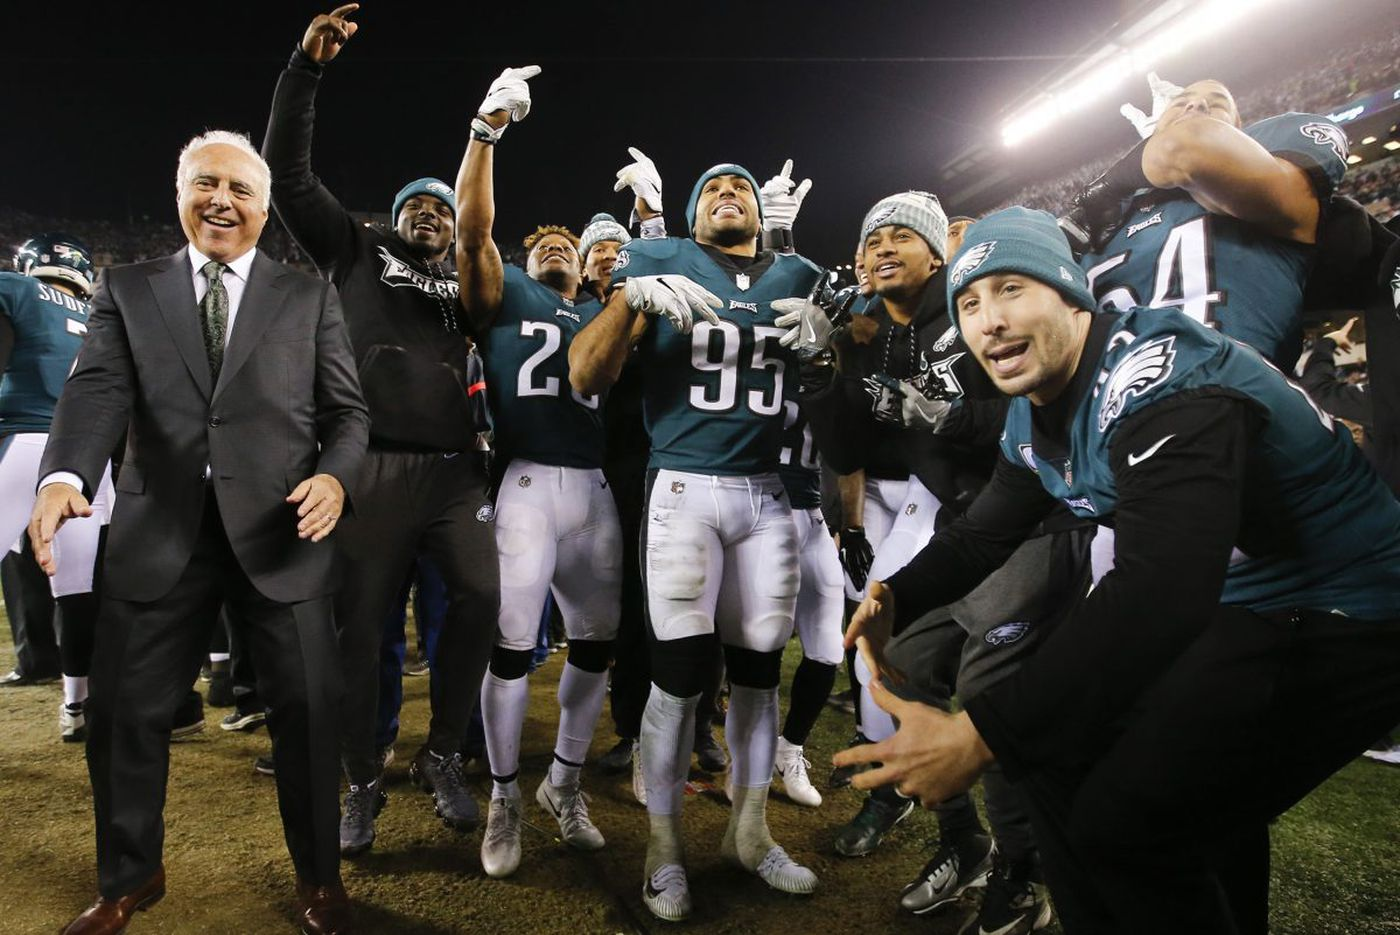 Scenes from a night of super madness for the Eagles | Bob Ford